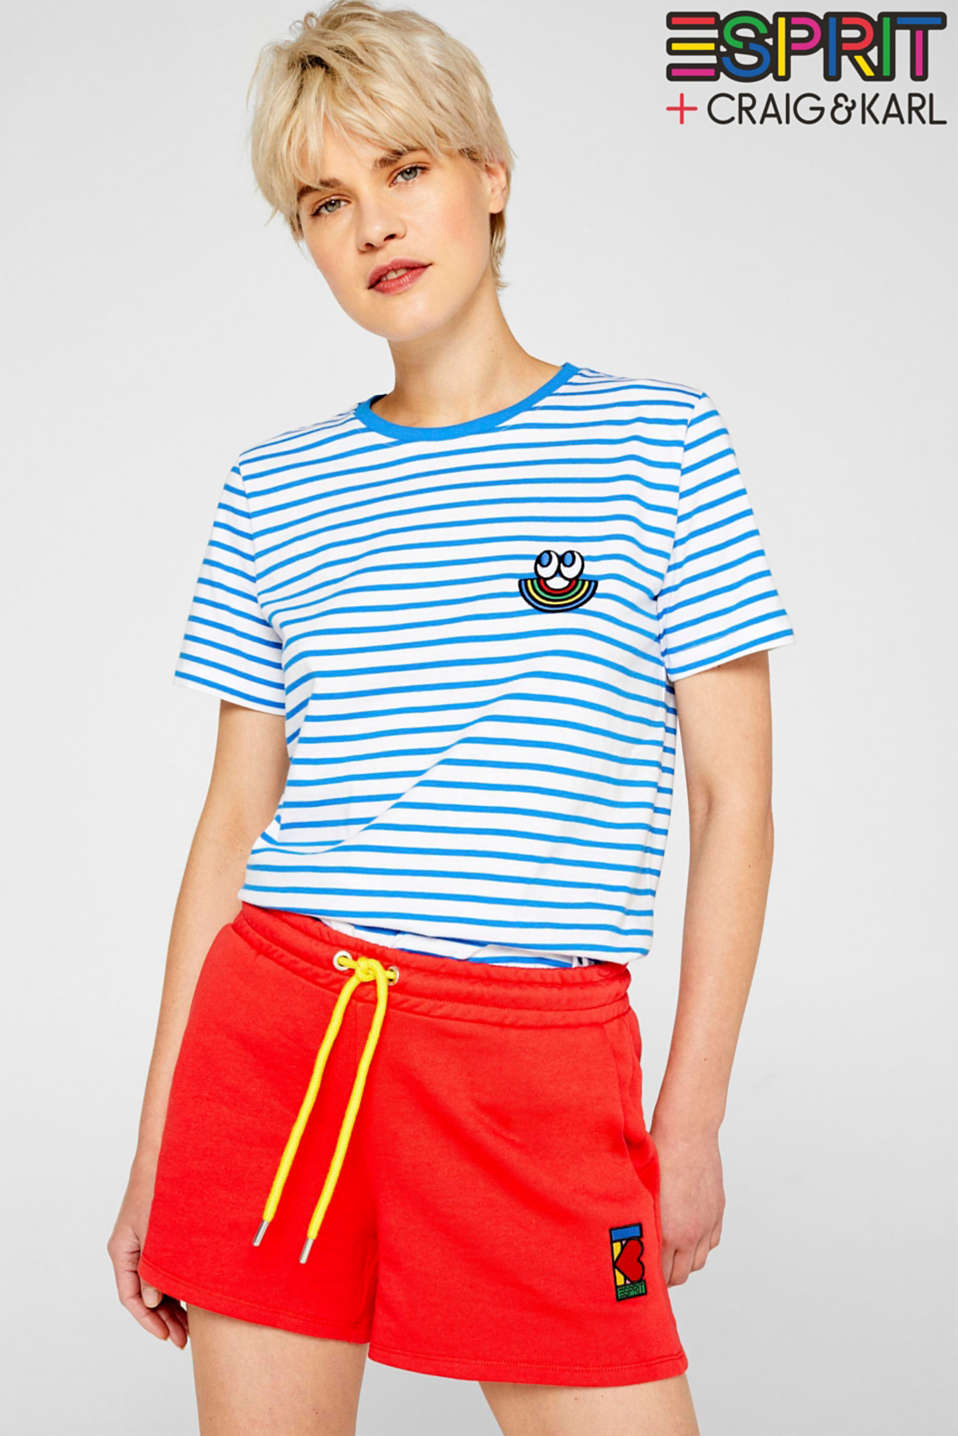 Esprit - CRAIG & KARL: women sweatshort, organic cotton